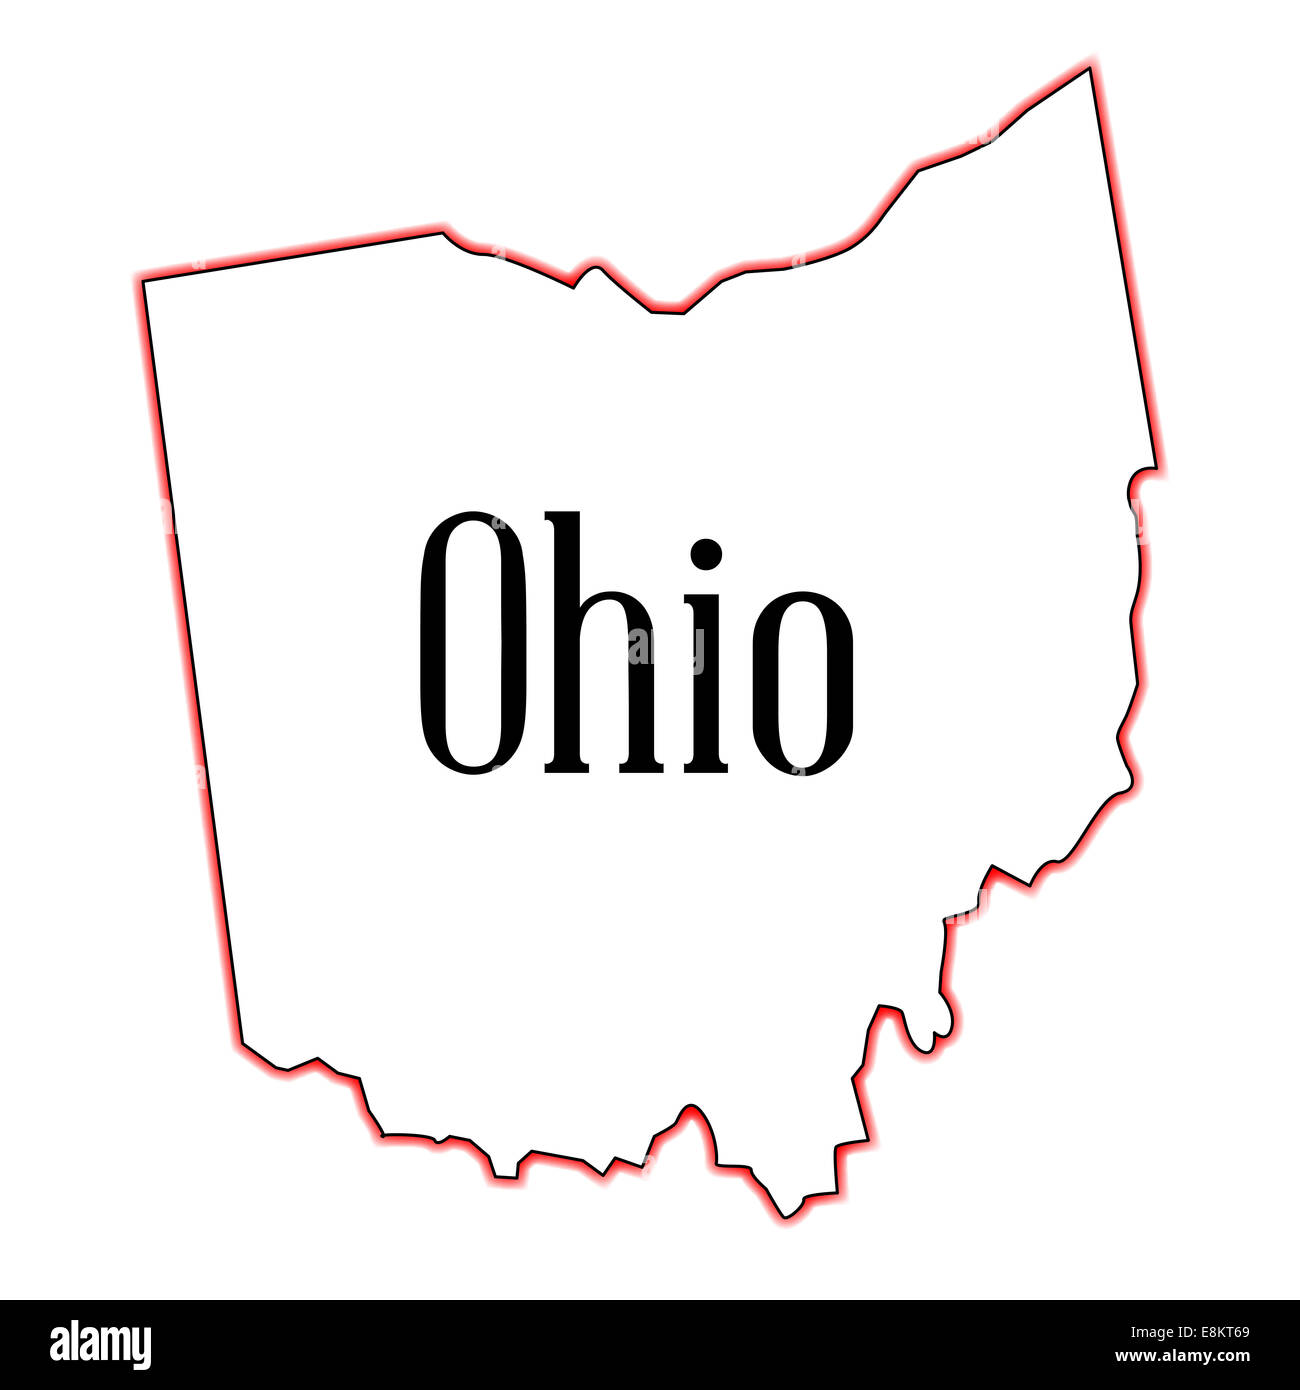 Outline Map Of Ohio.Outline Map Of The State Of Ohio Stock Photo 74194801 Alamy